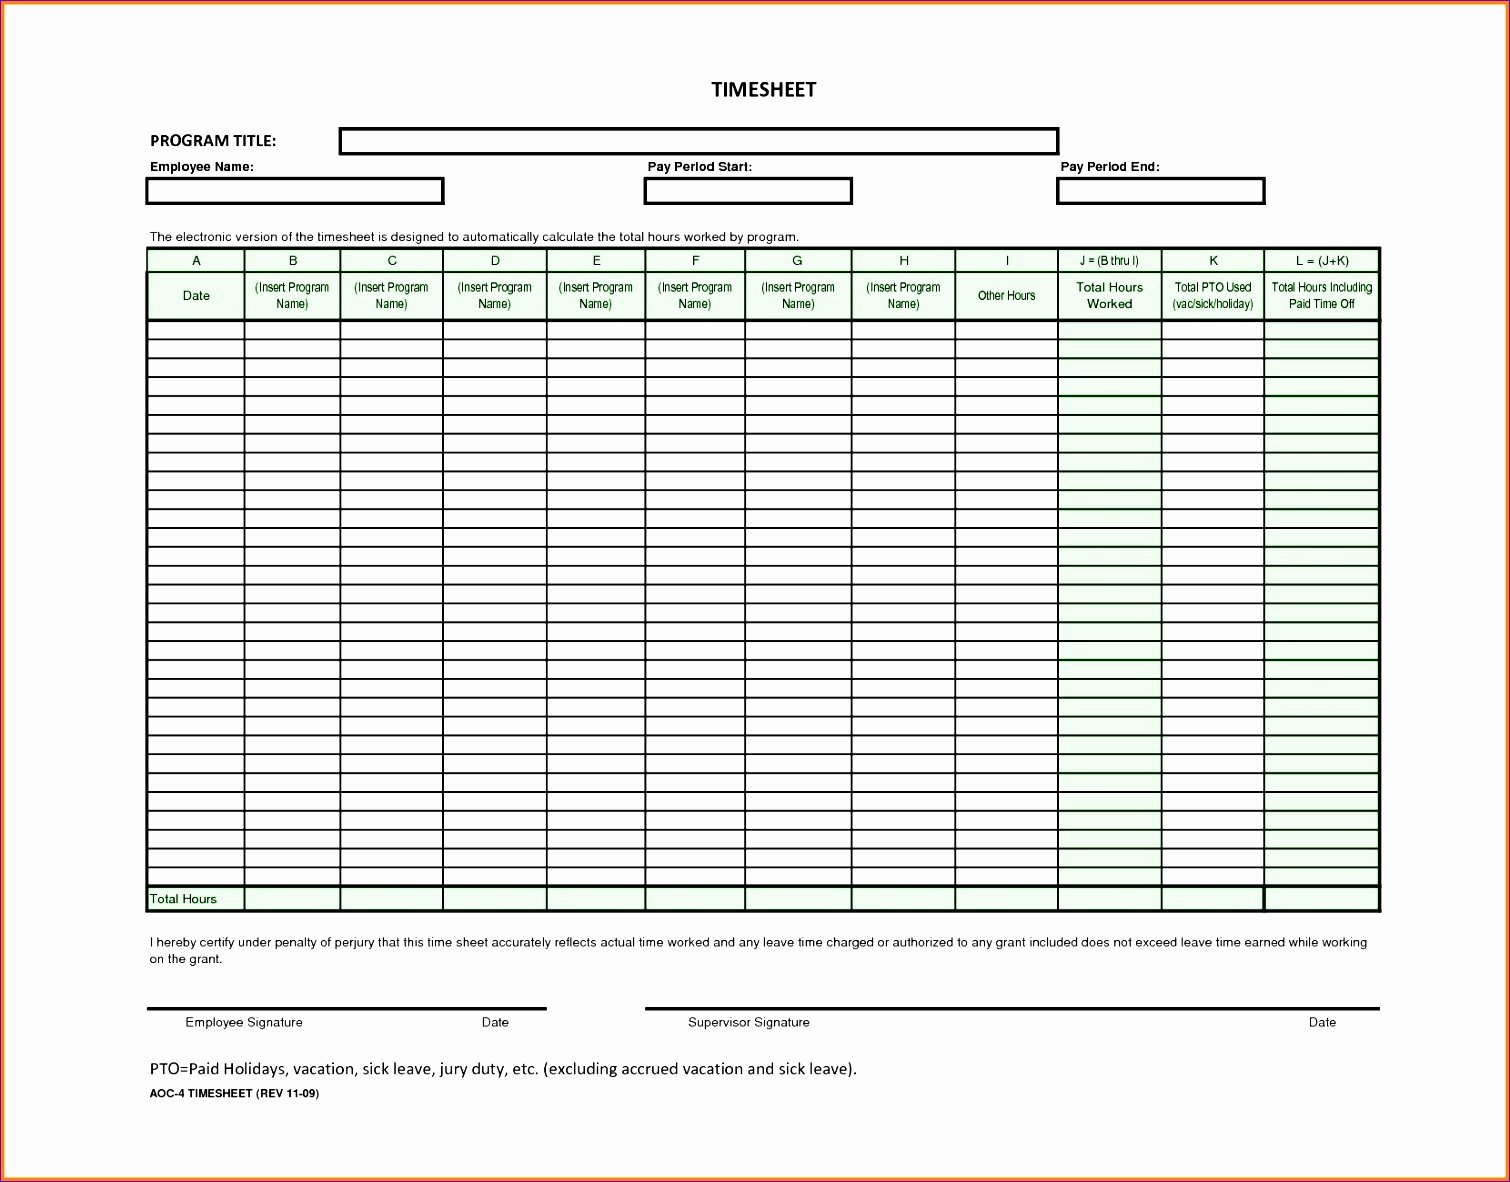 Daily Timesheet Excel Template Awesome 8 Semi Monthly Timesheet Template Excel Exceltemplates